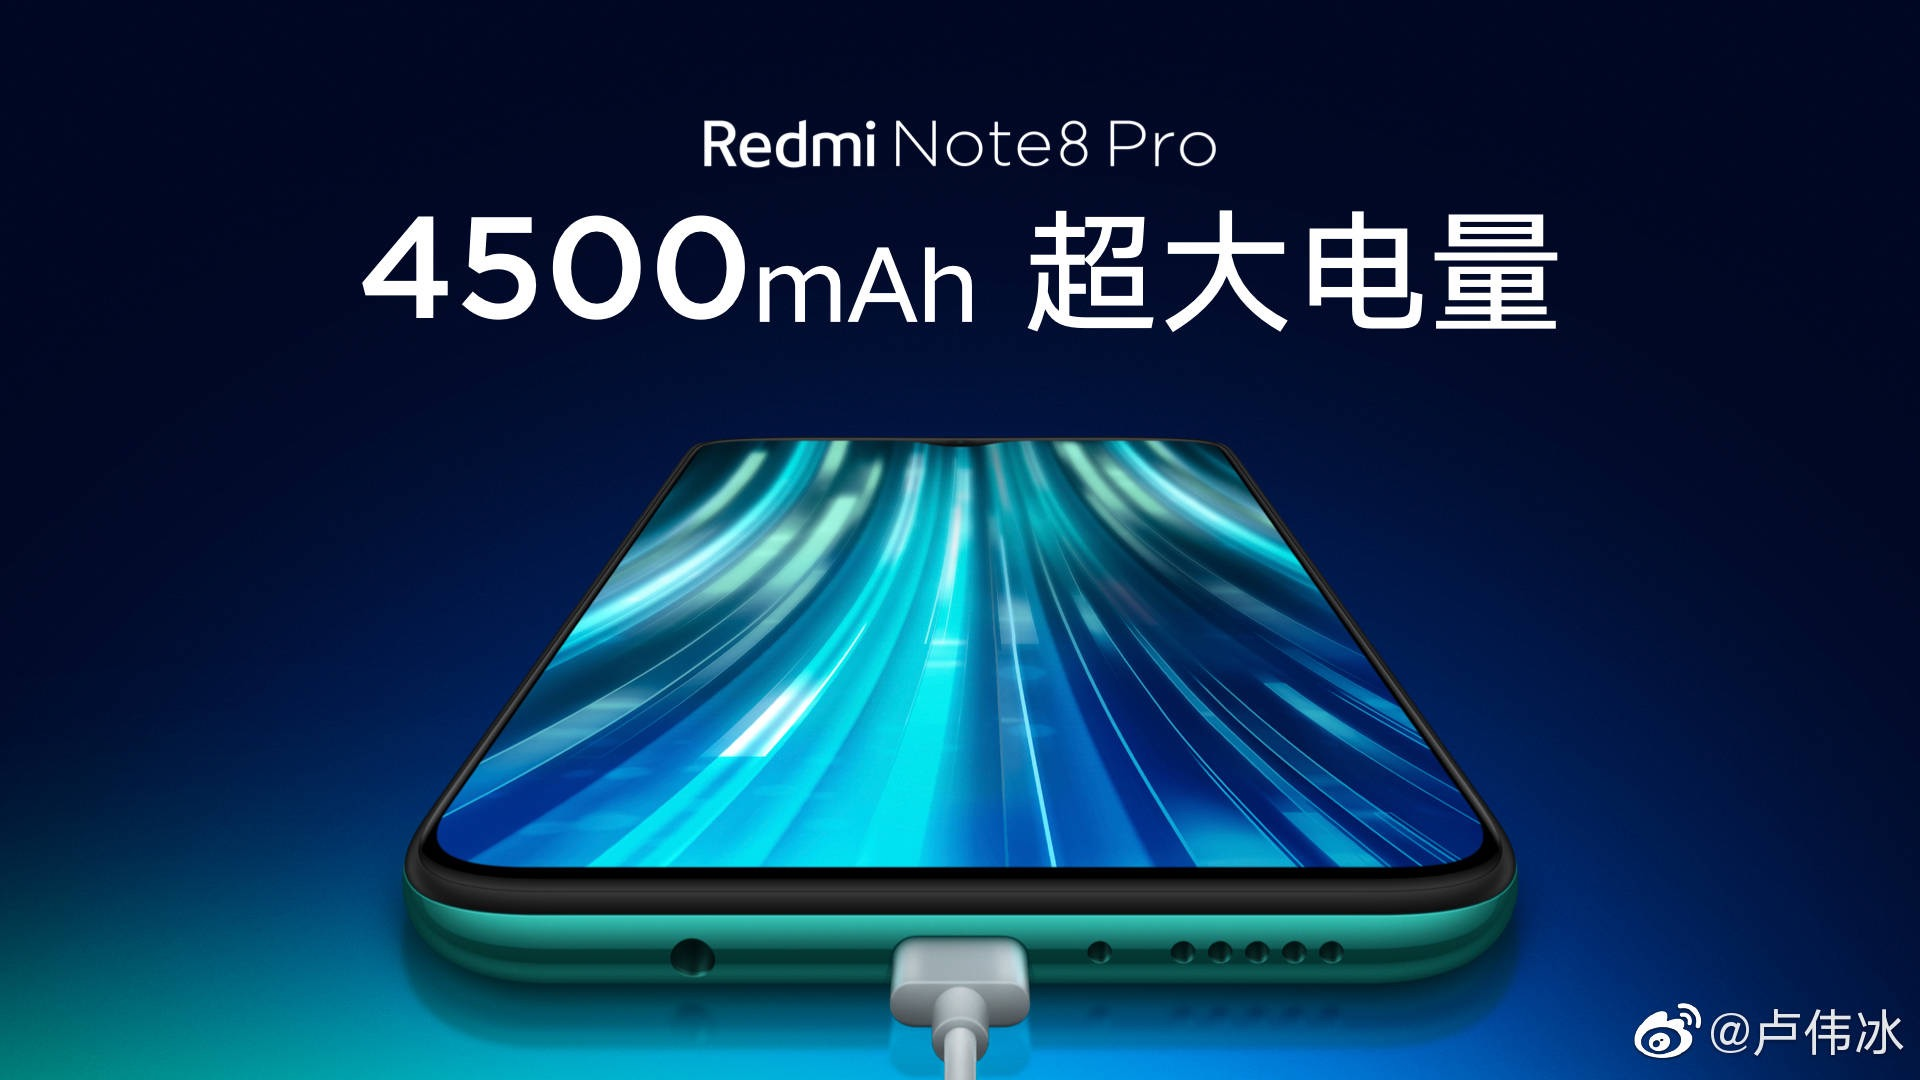 Redmi Note 8 Pro will have 4,500mAh battery. Xiaomi Addicted News